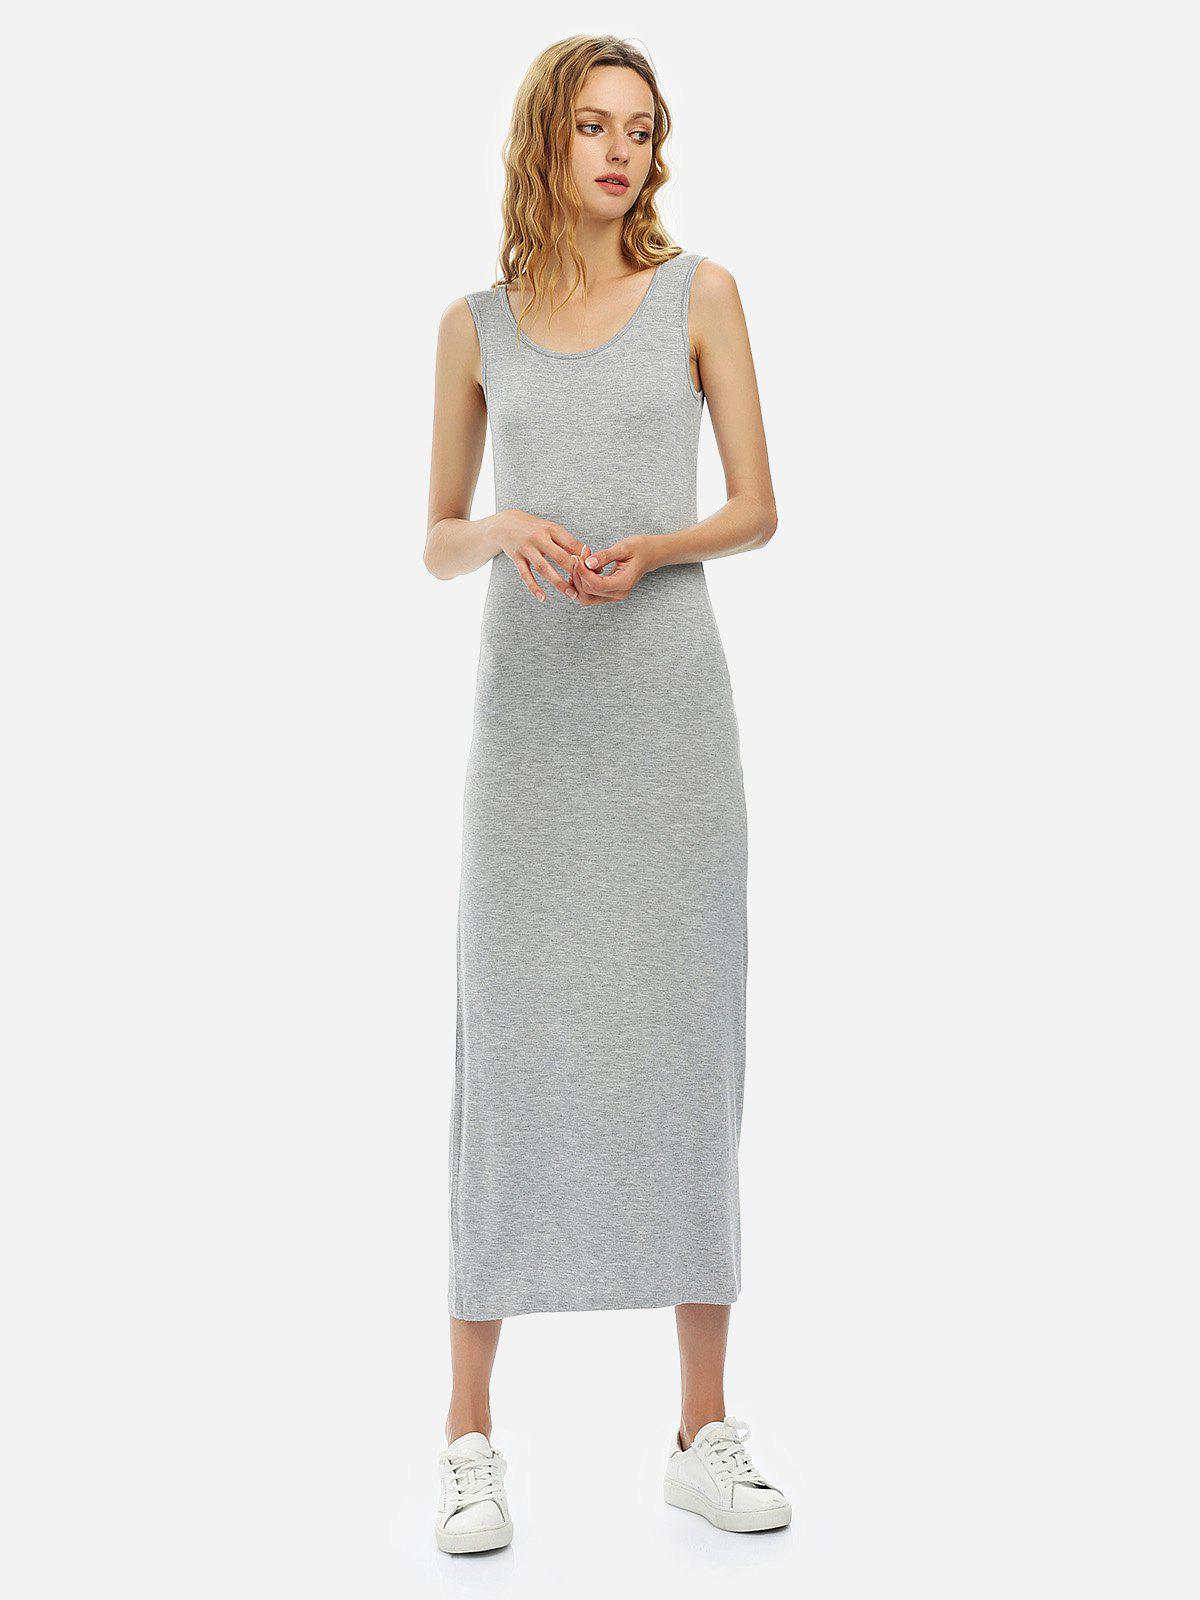 ZAN.STYLE Crew Neck Sleeveless Dress